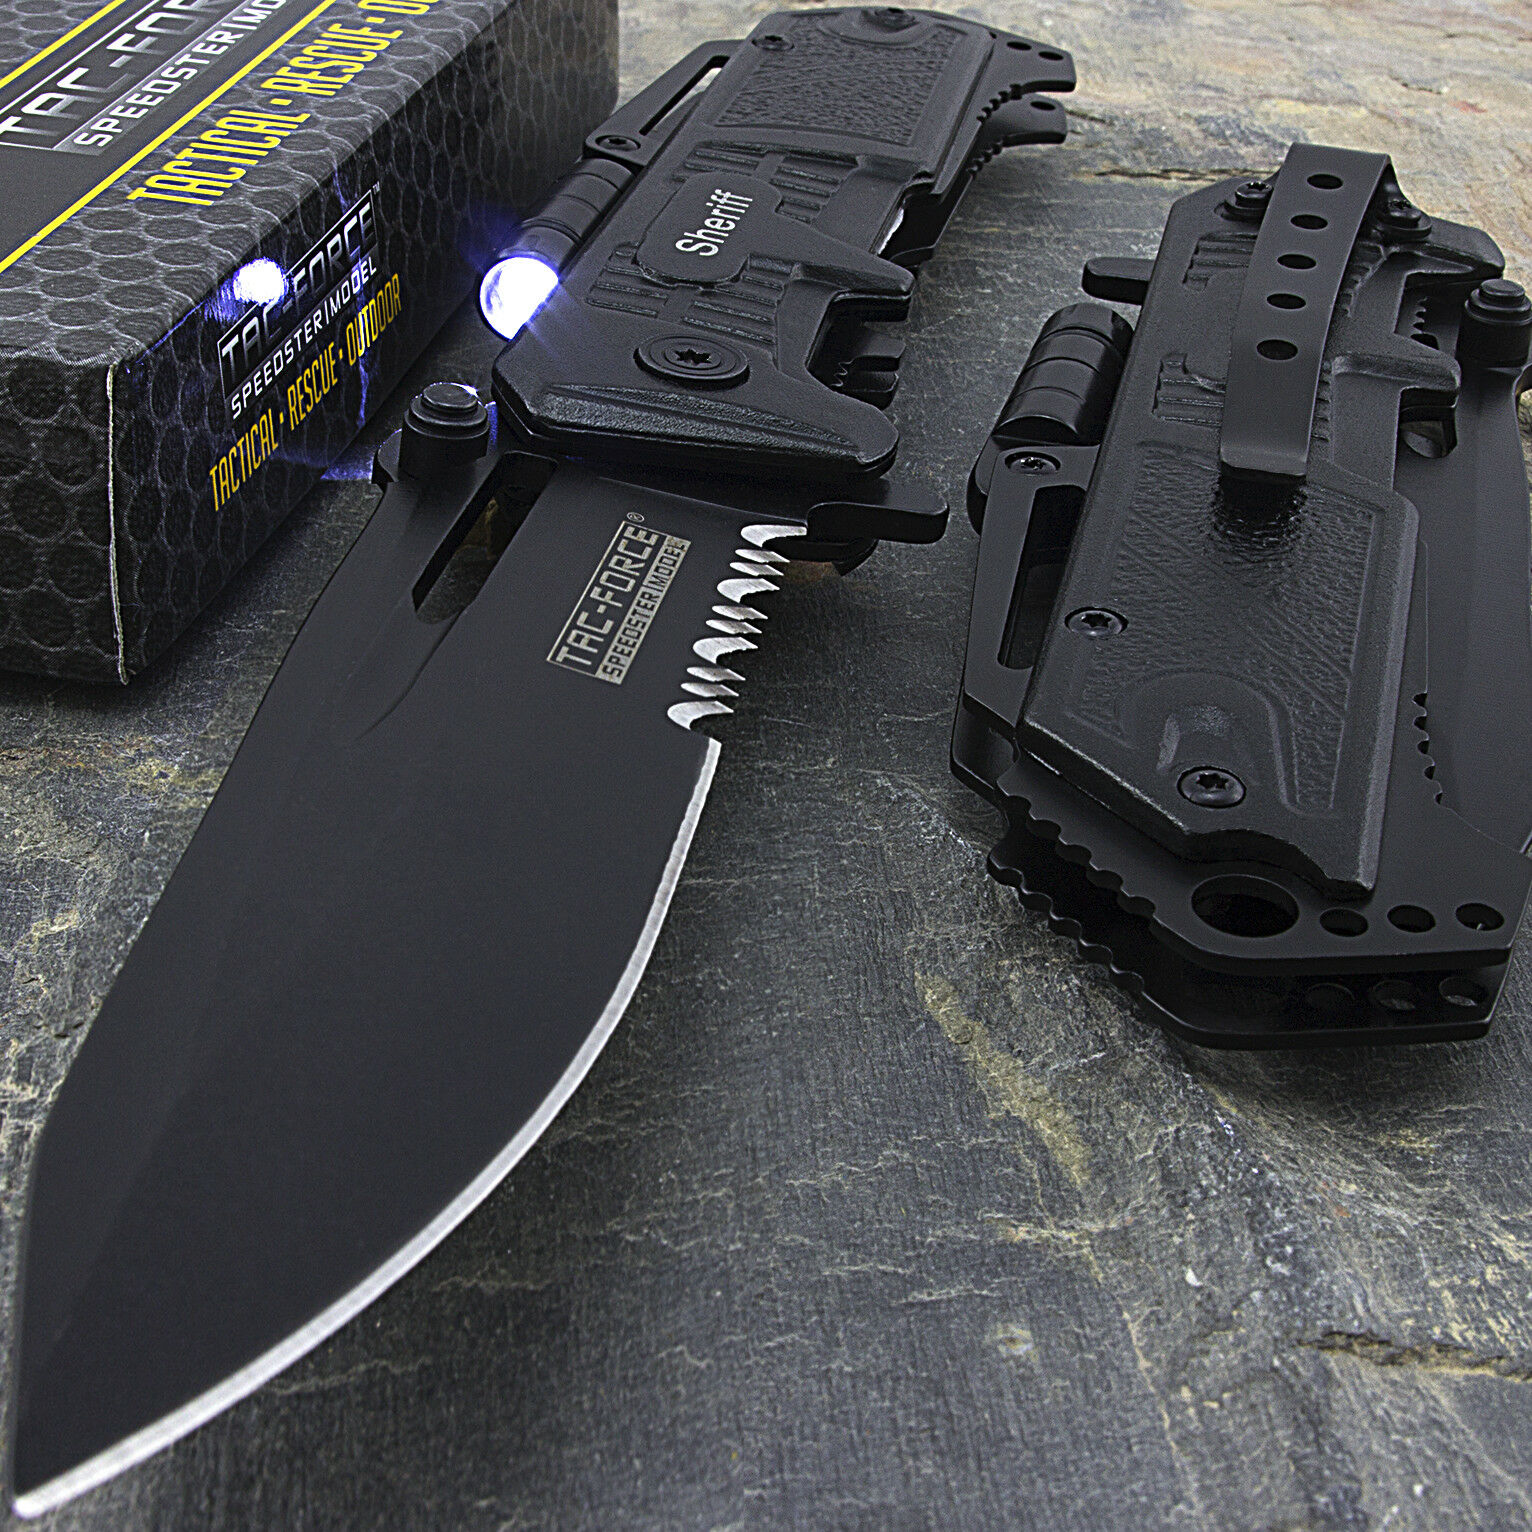 "Knife - 8.5"" SHERIFF TAC FORCE SPRING ASSISTED FOLDING POCKET KNIFE w/ LED FLASHLIGHT"